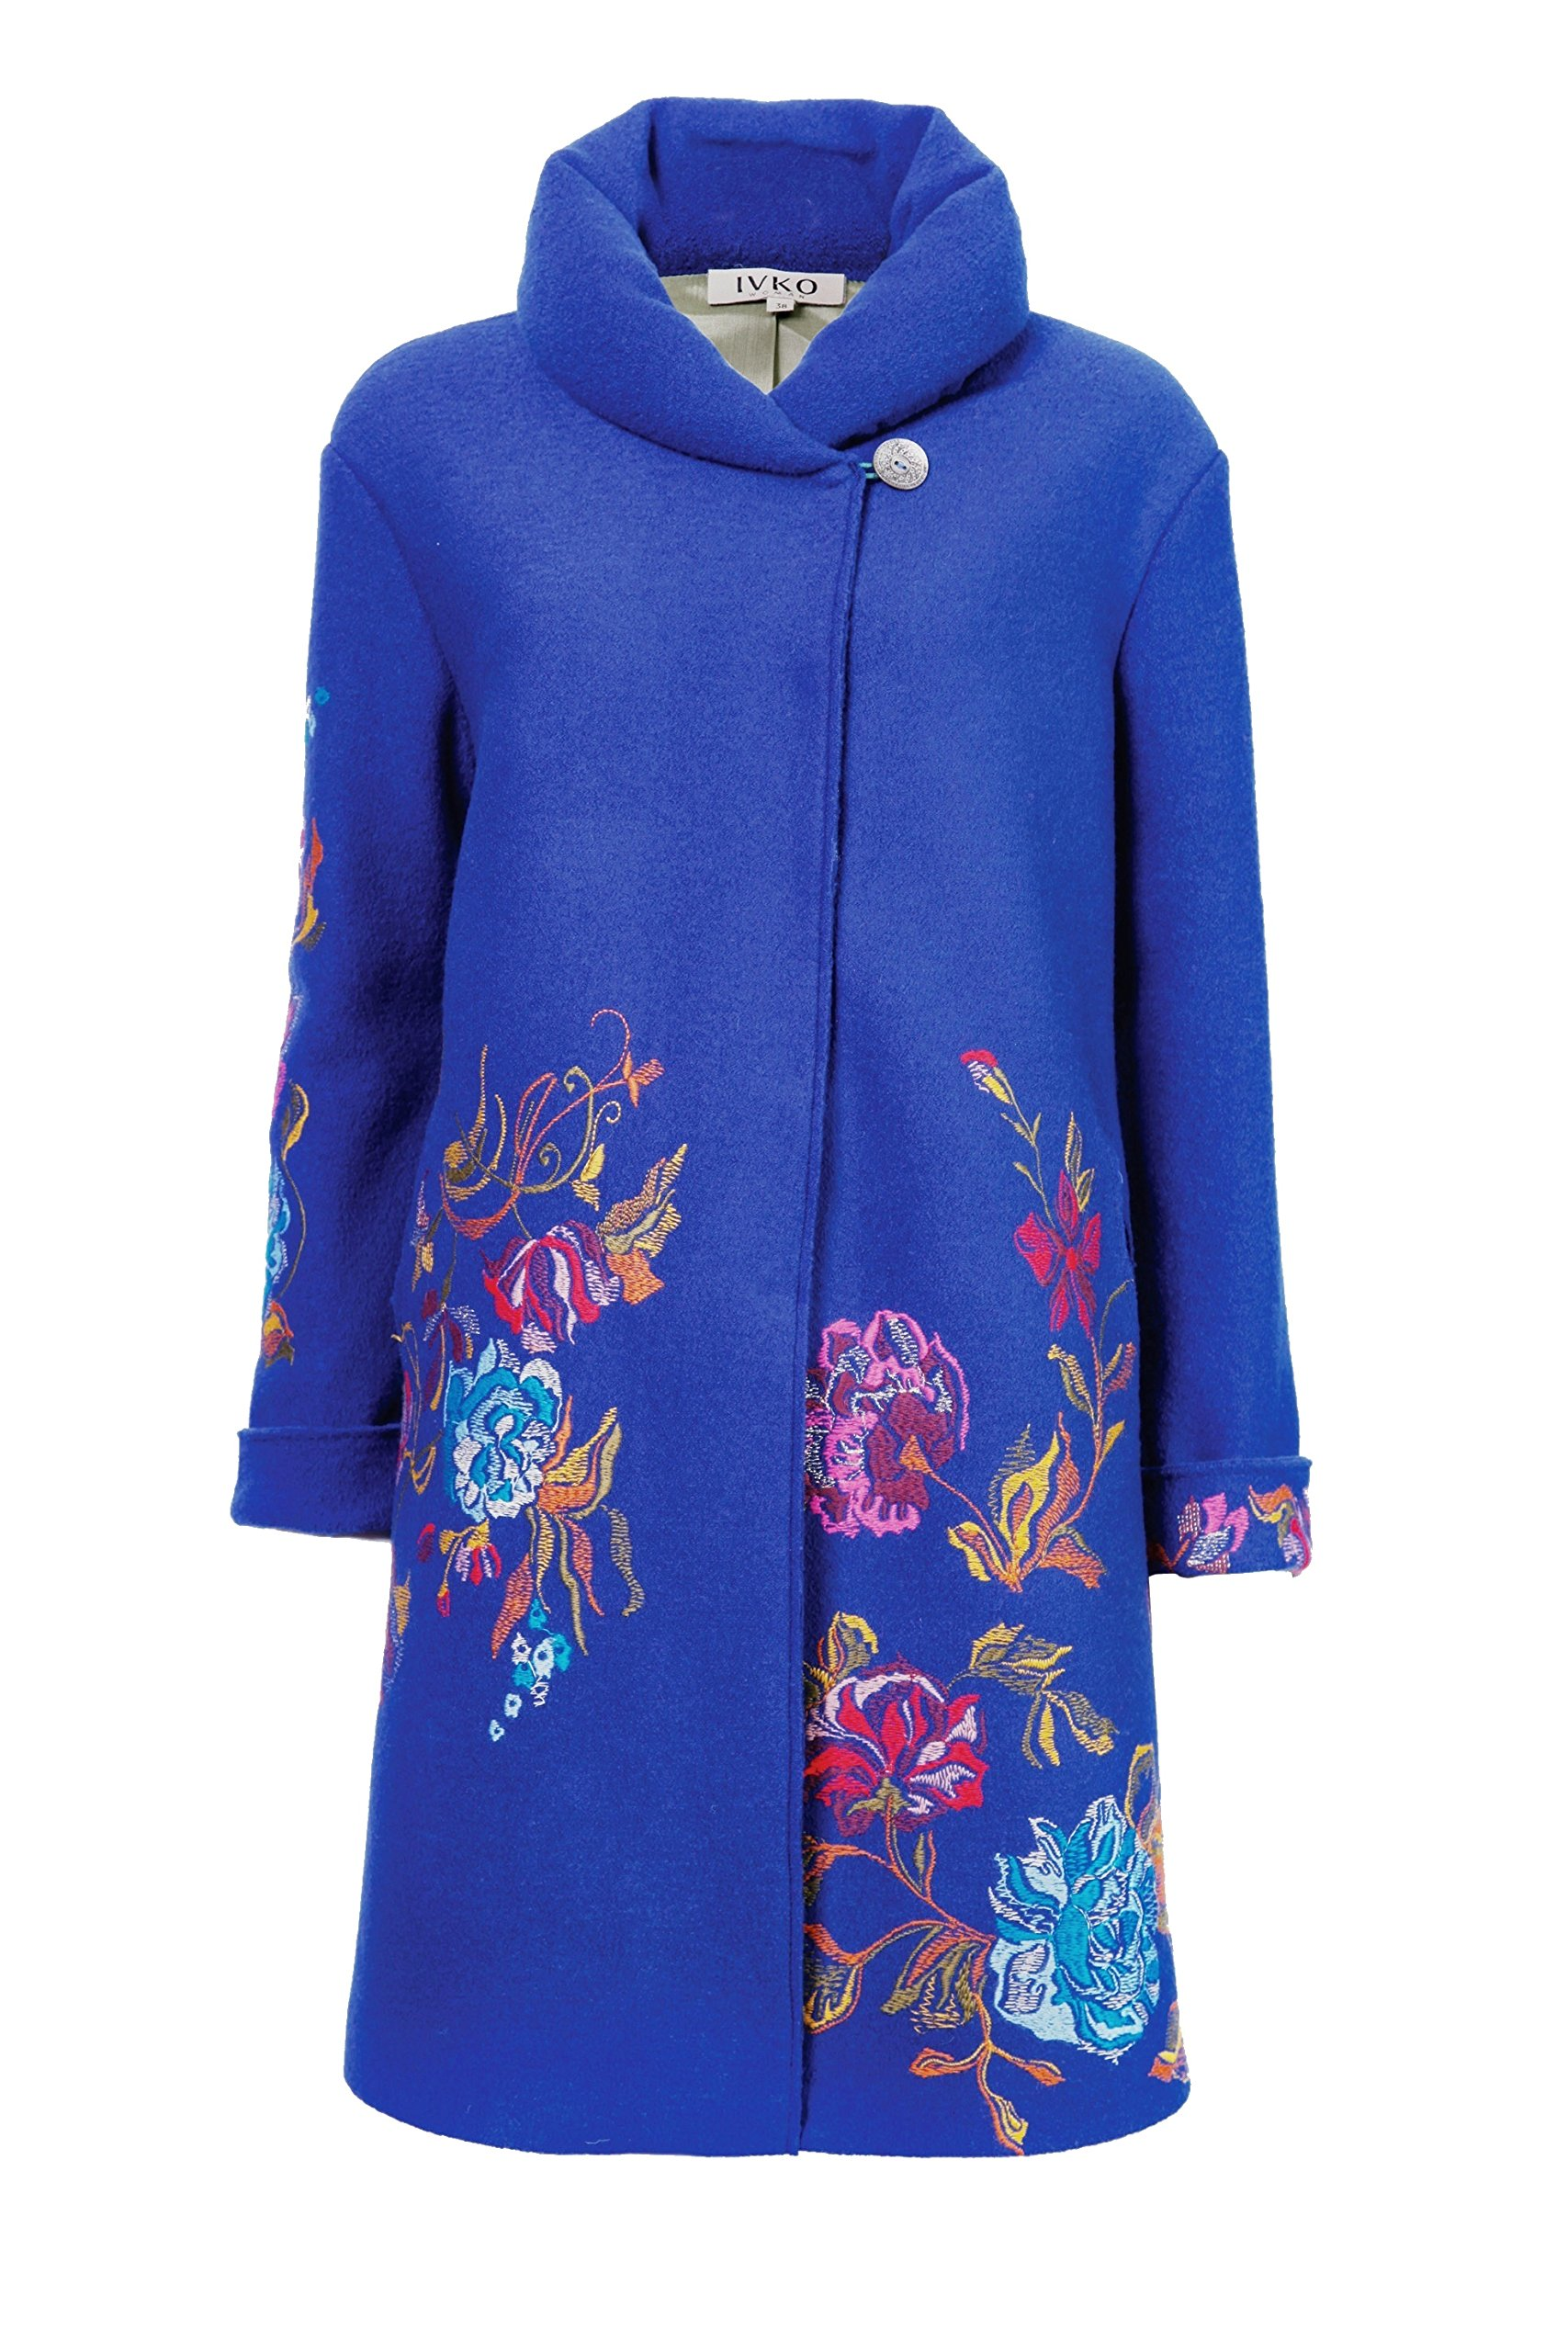 IVKO Long Merino Wool Coat with Embroidered Flower Designs, Blue, US 8 - EUR 38